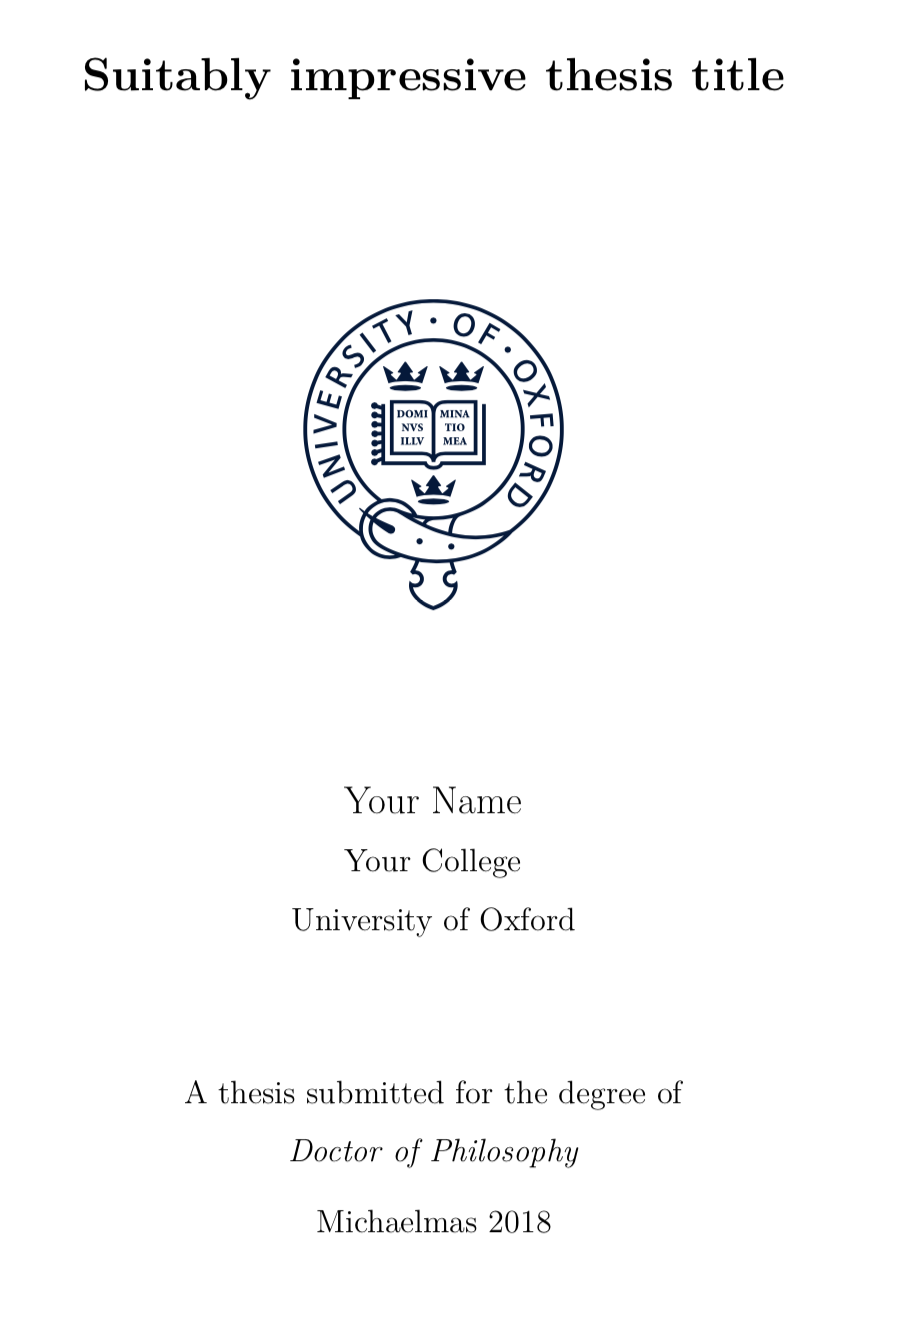 Doctoral thesis template doc singers resume